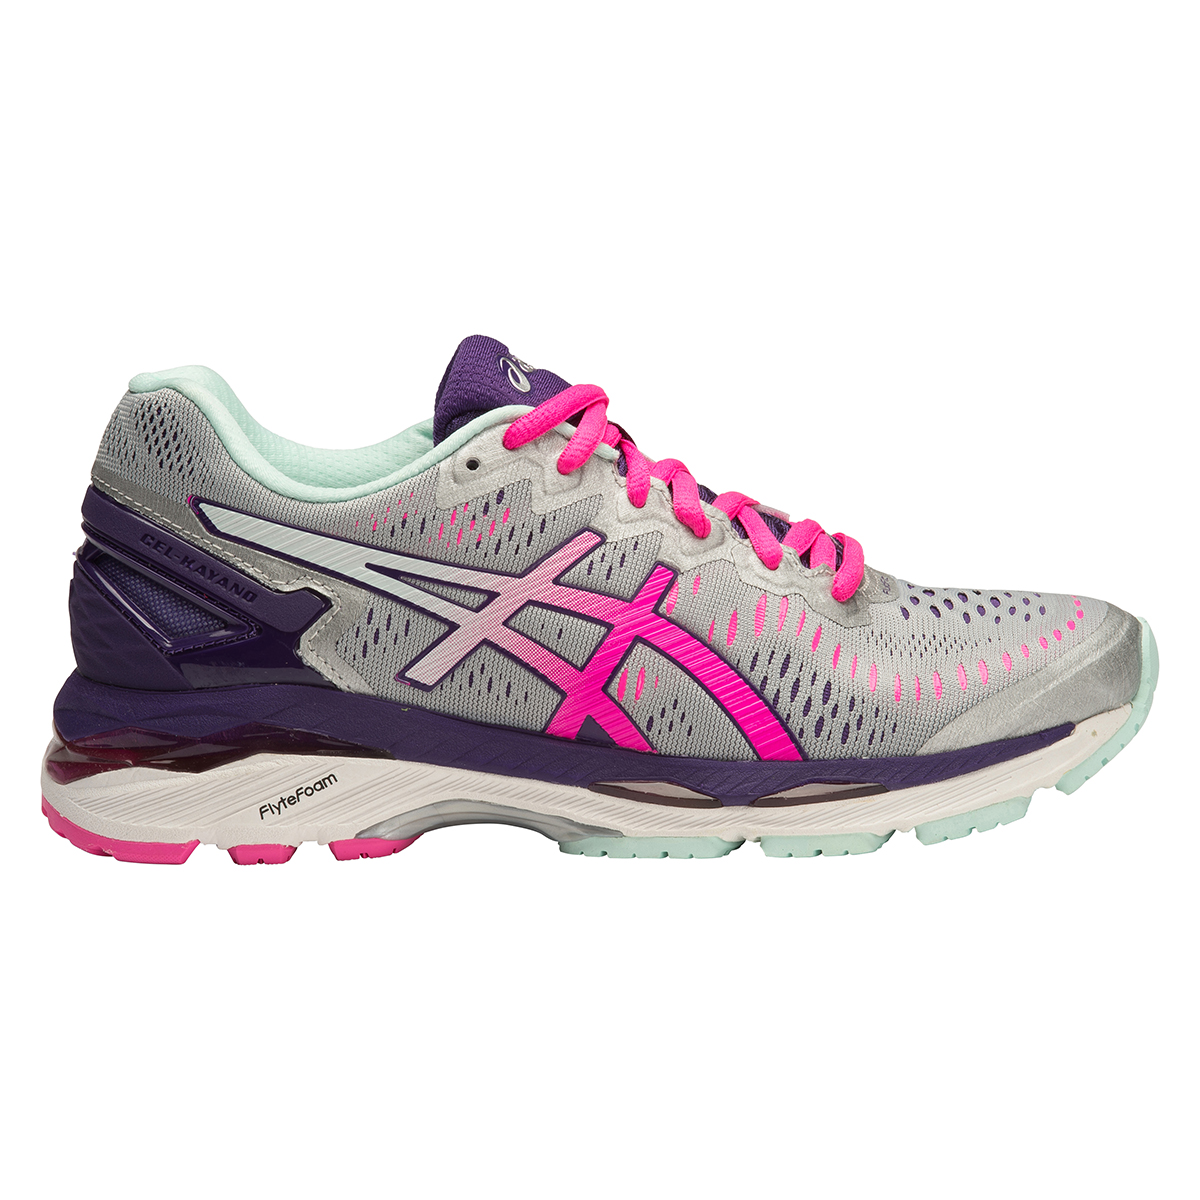 asics stability shoes women